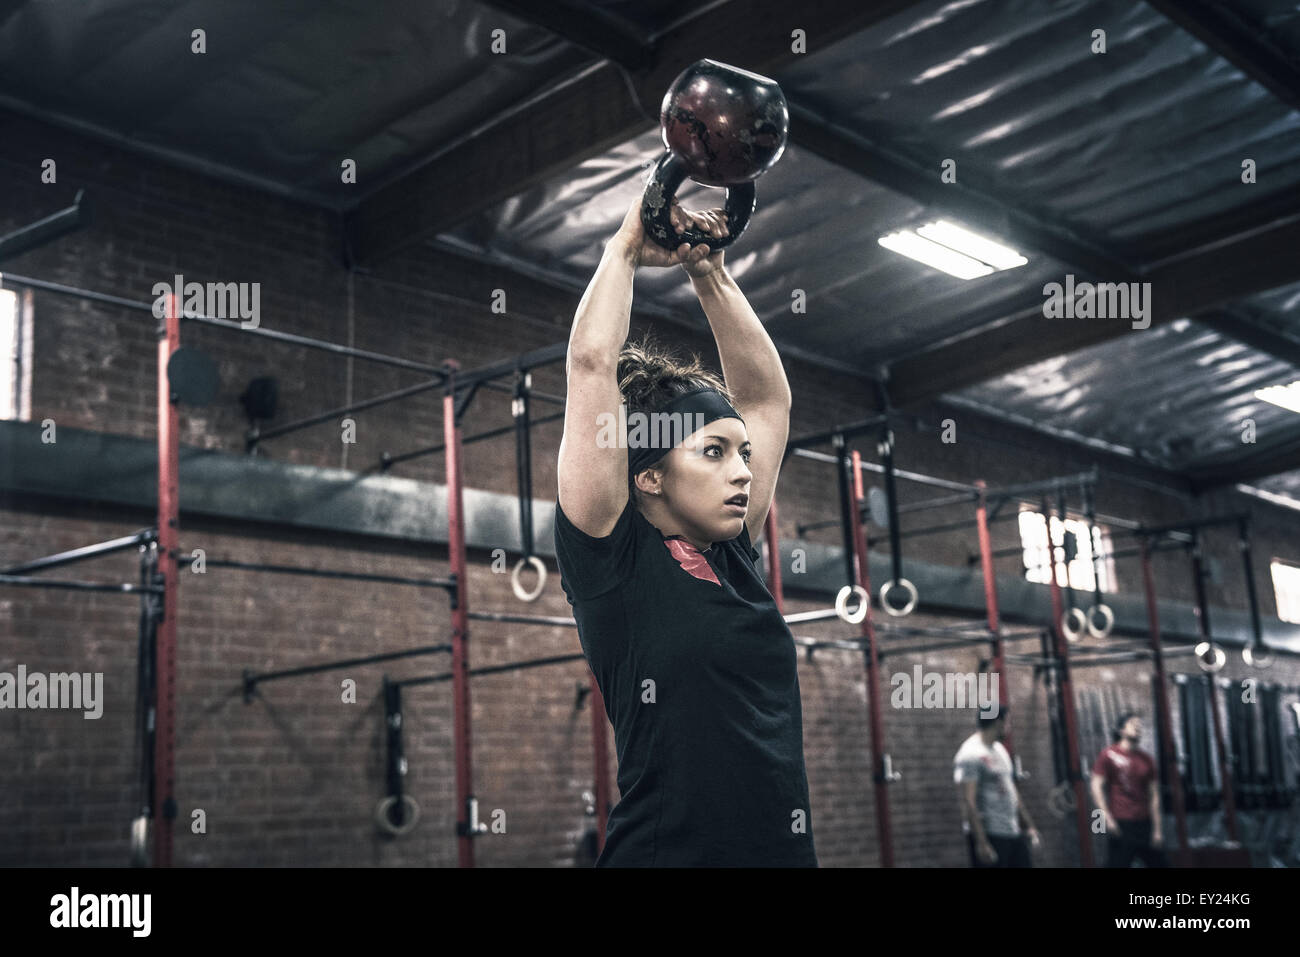 Young woman holding up électrique bells in gym Banque D'Images